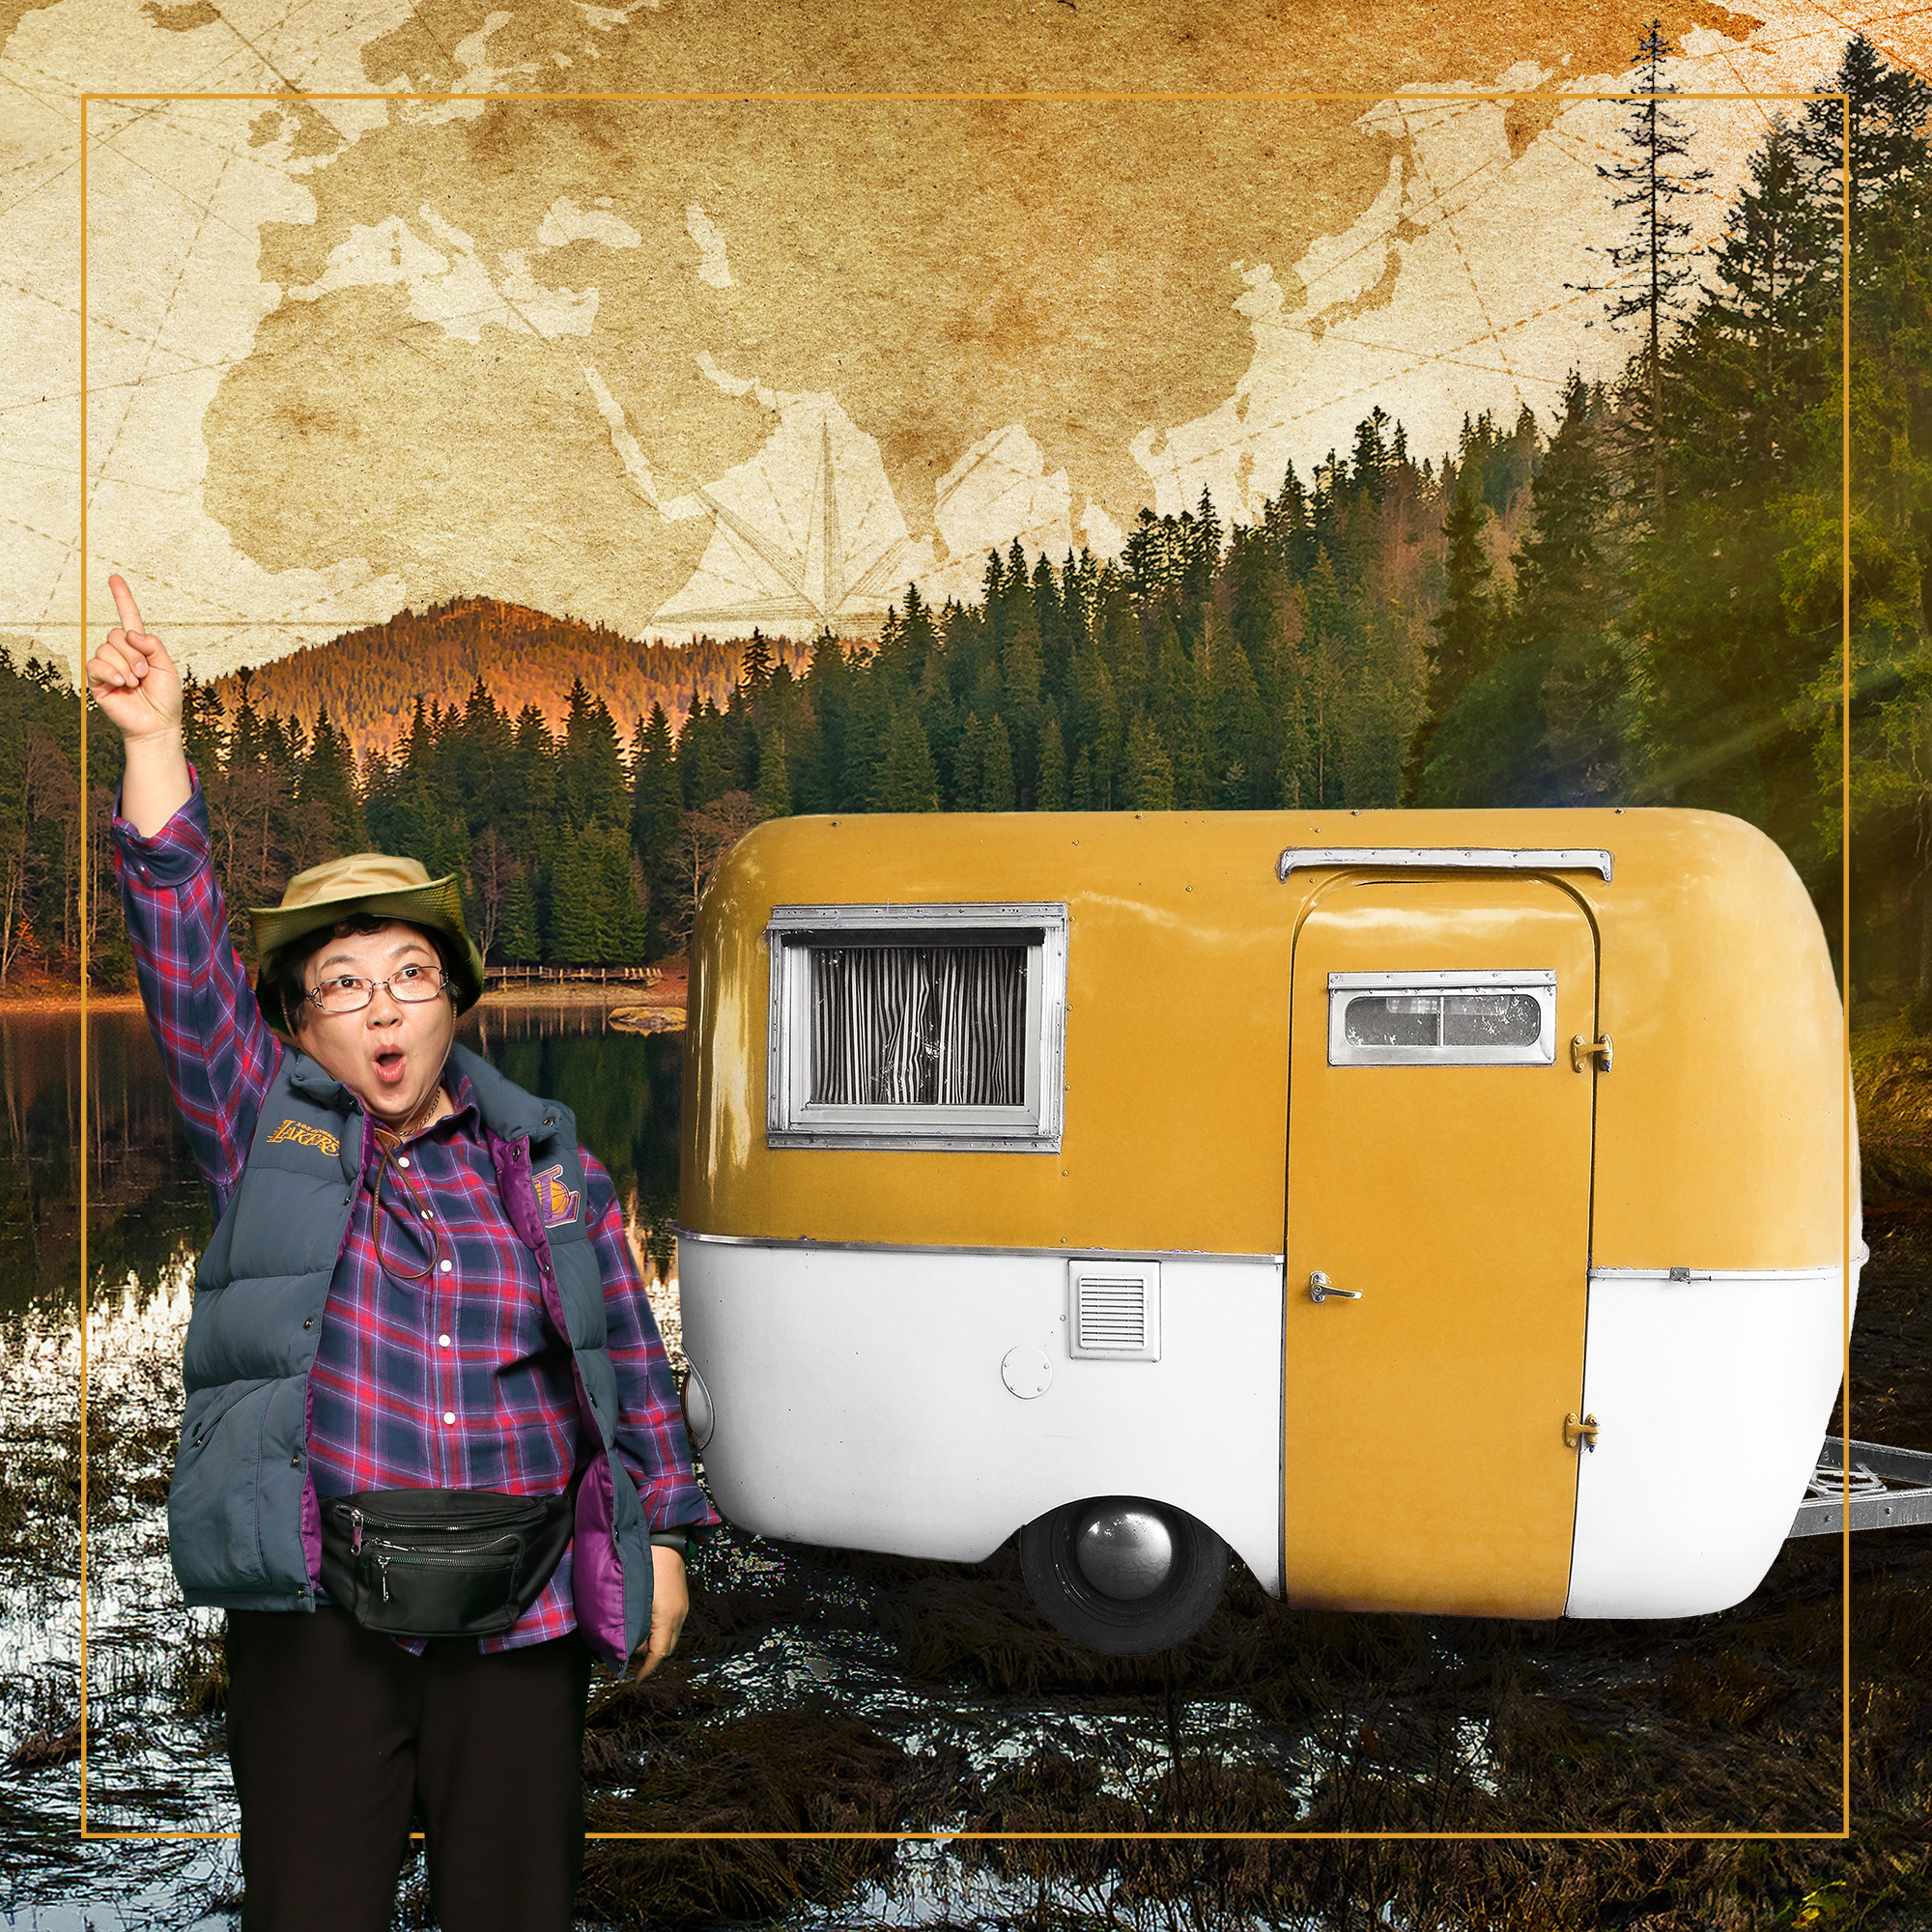 Jeongsun standing next to a vintage caravan, pointing to the sky, with ranges of pine trees in the distance